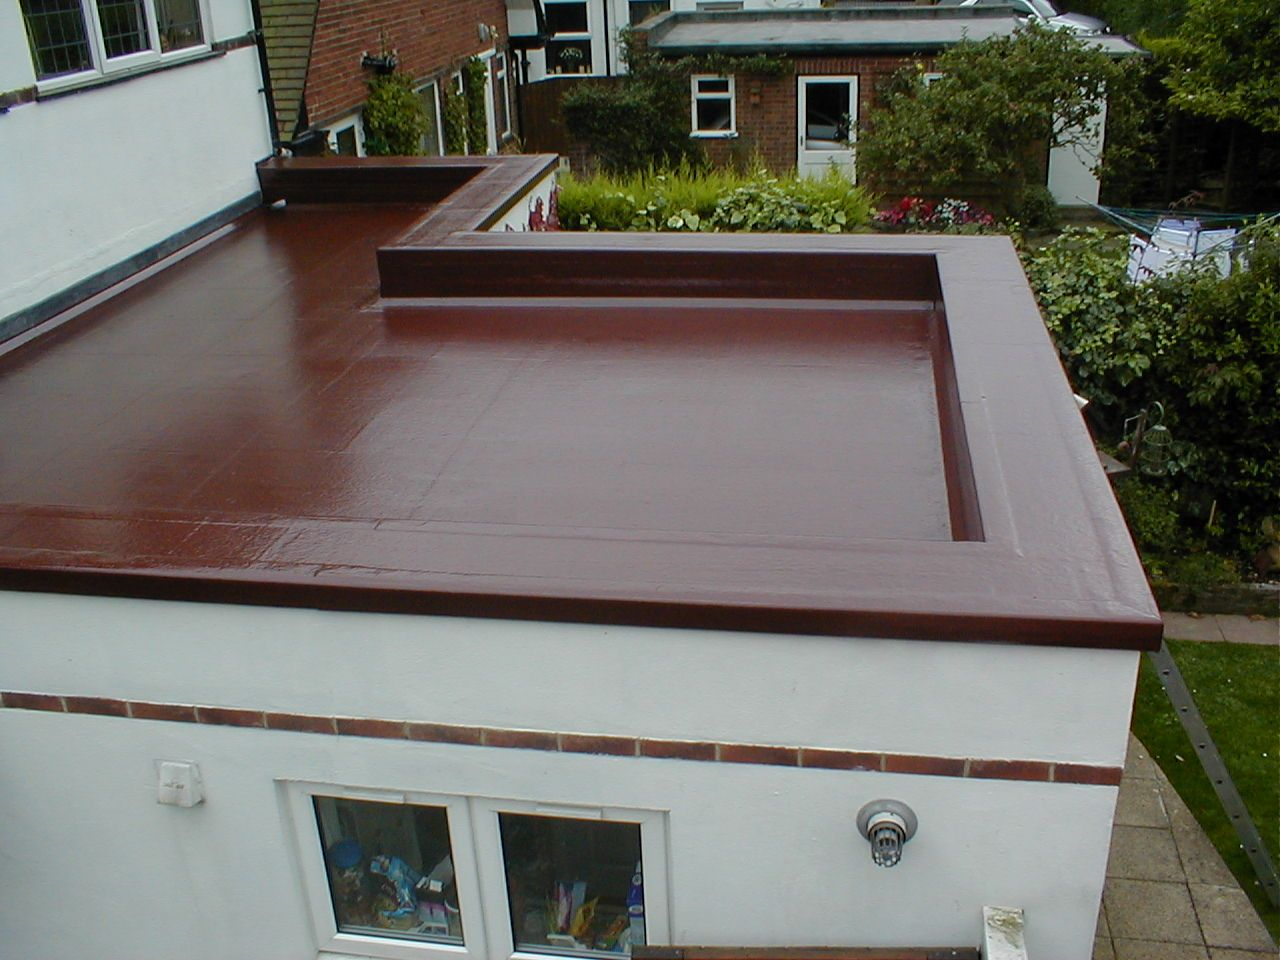 Benefits of Getting a Flat Roof